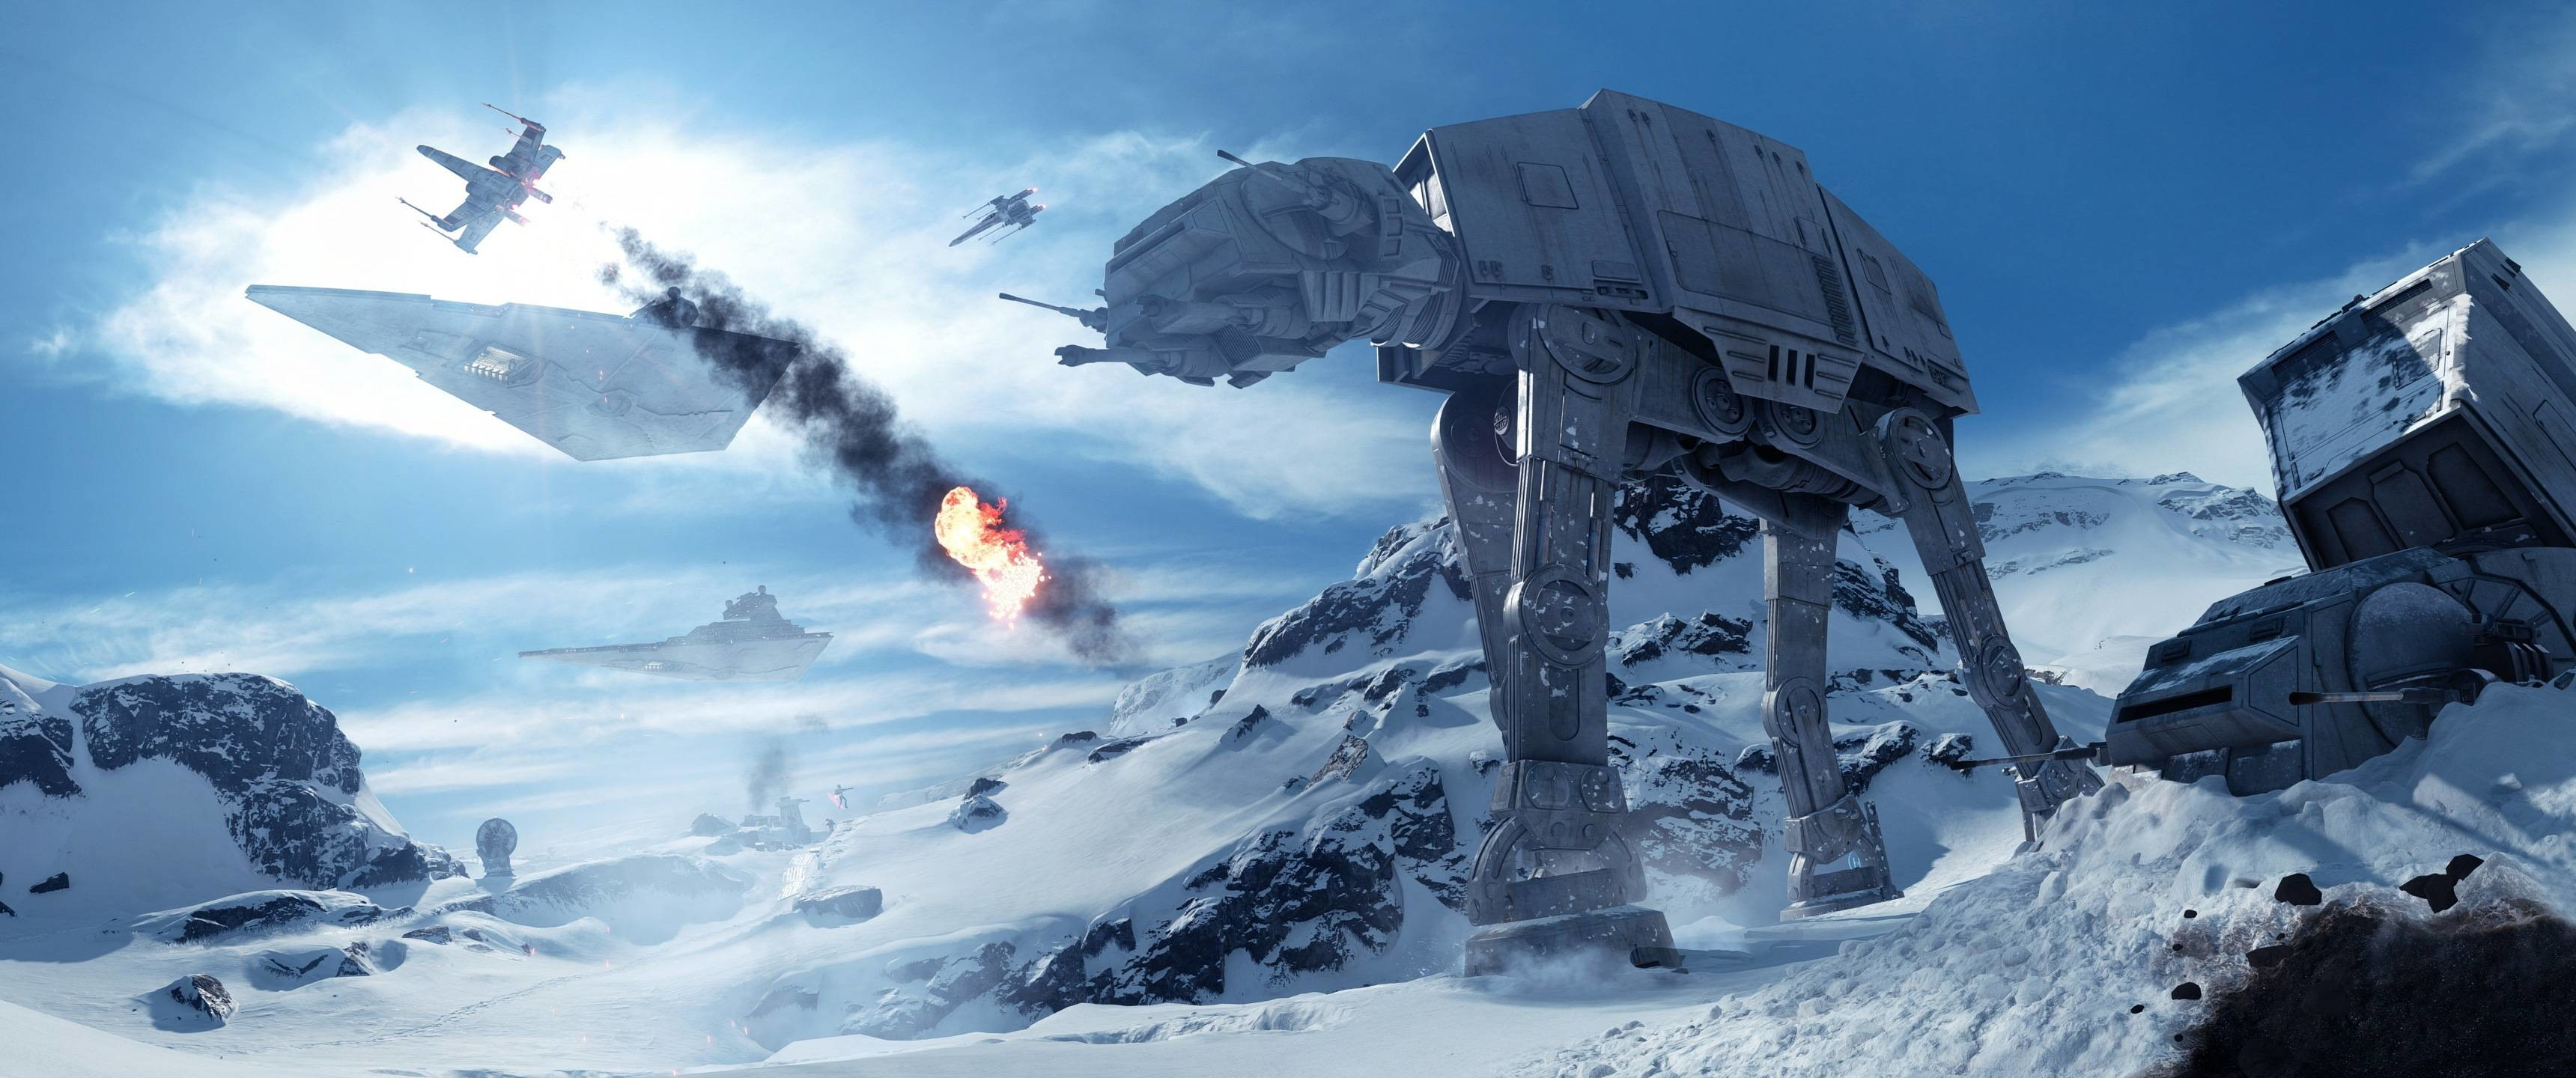 3440x1440 Star Wars: Battlefront [] ...